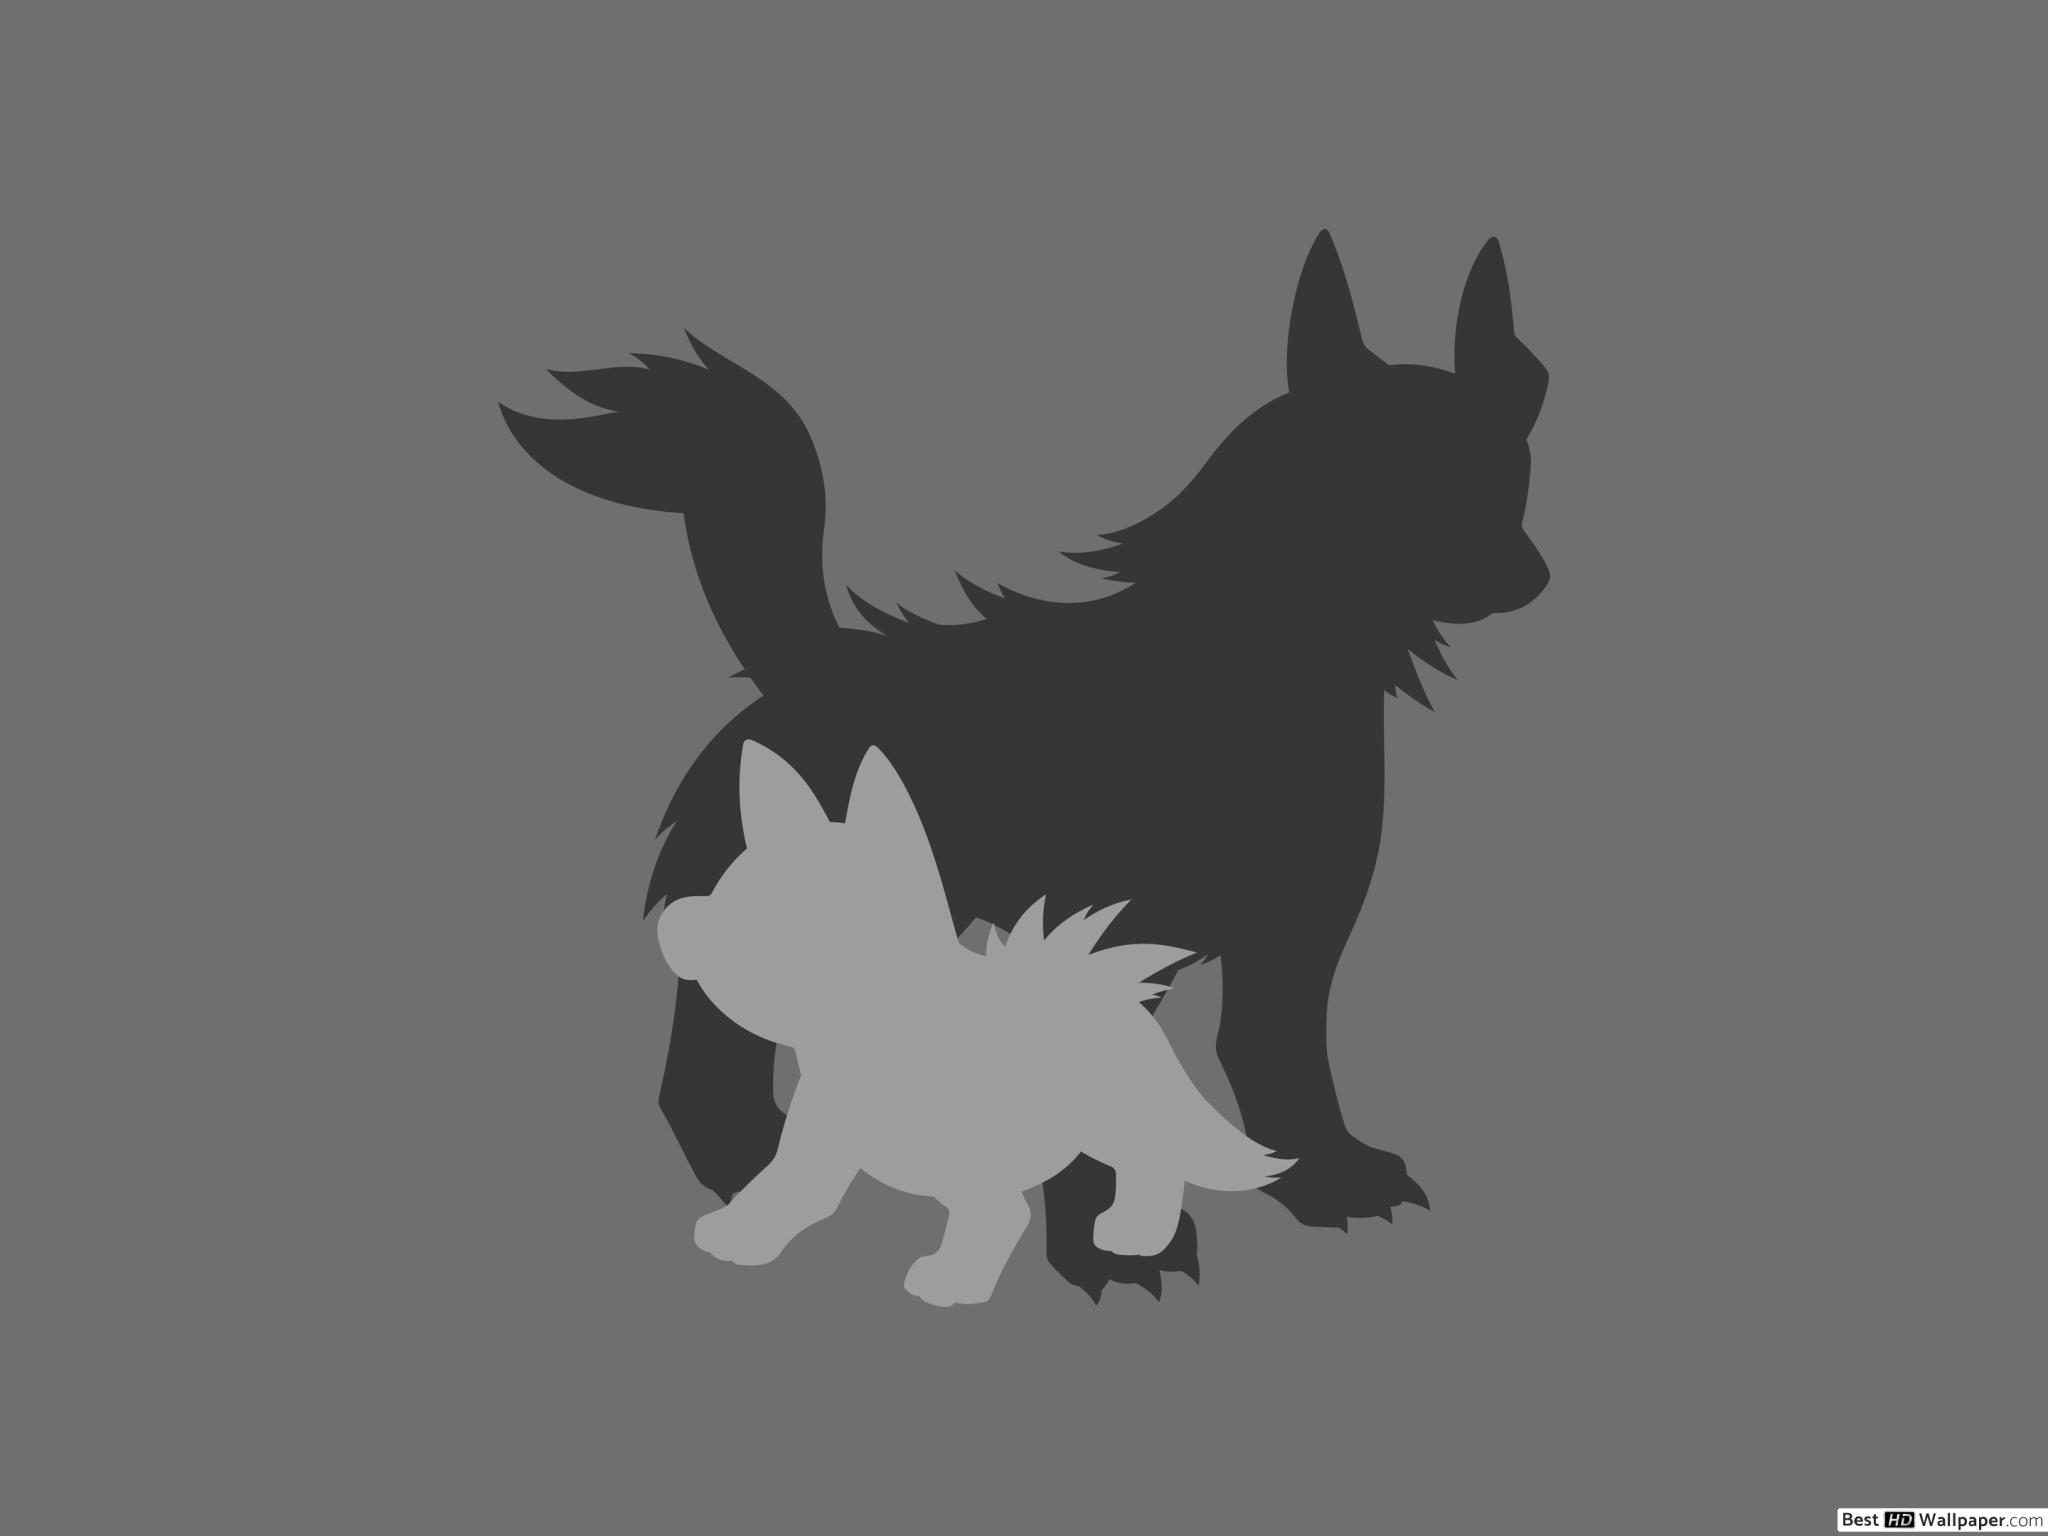 Mightyena and Poochyena of Pokemon HD wallpaper download 2048x1536